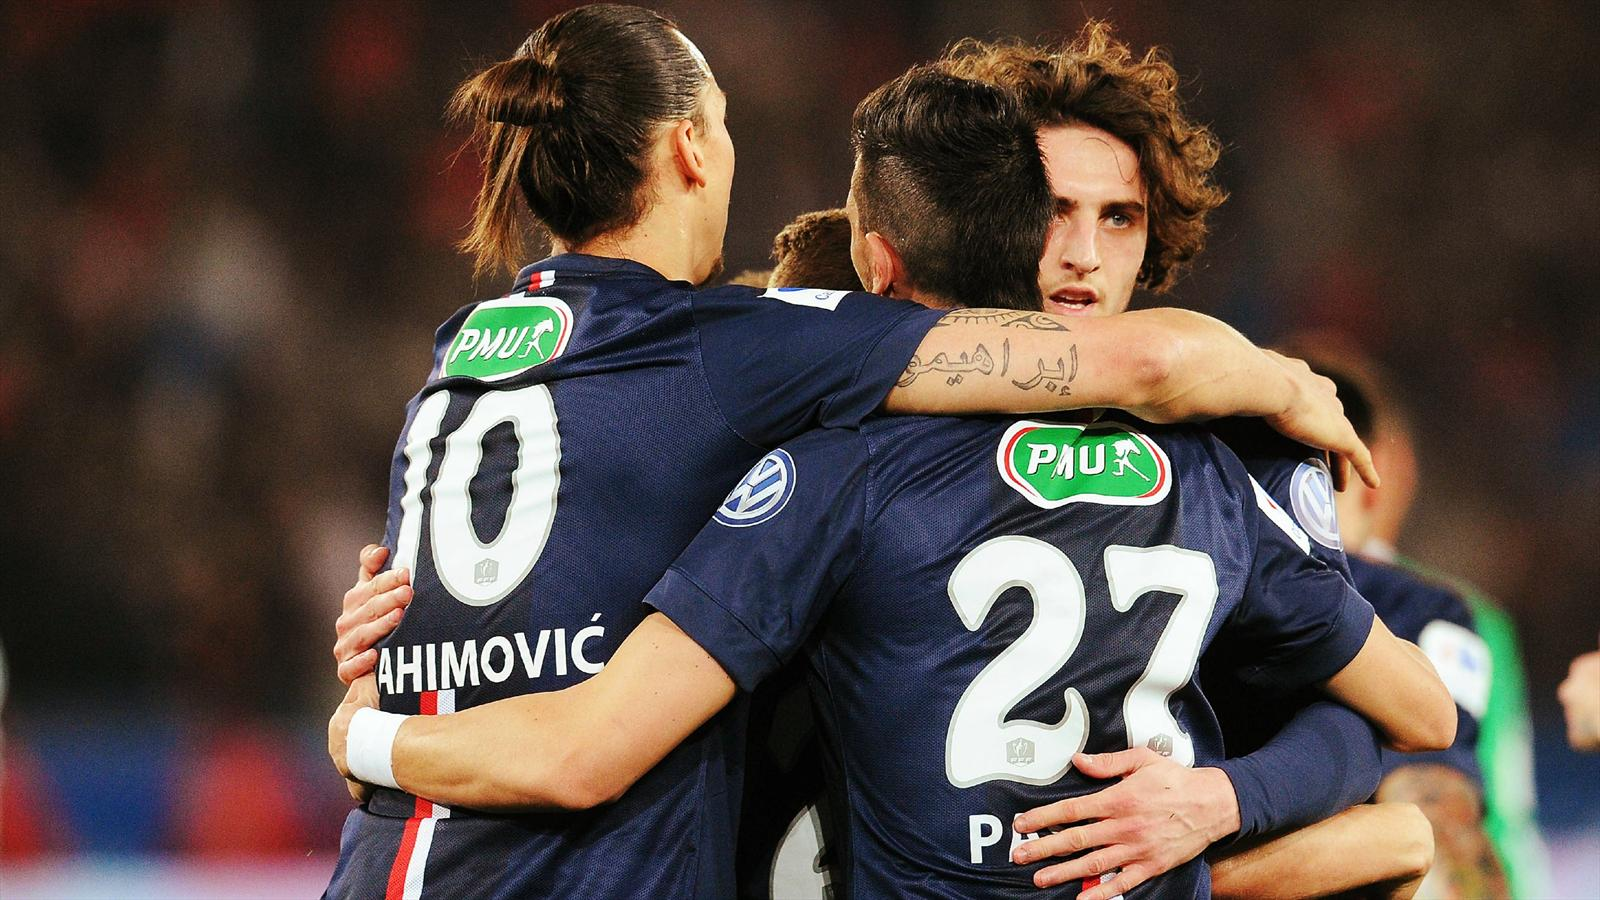 Video: PSG vs Saint-Etienne